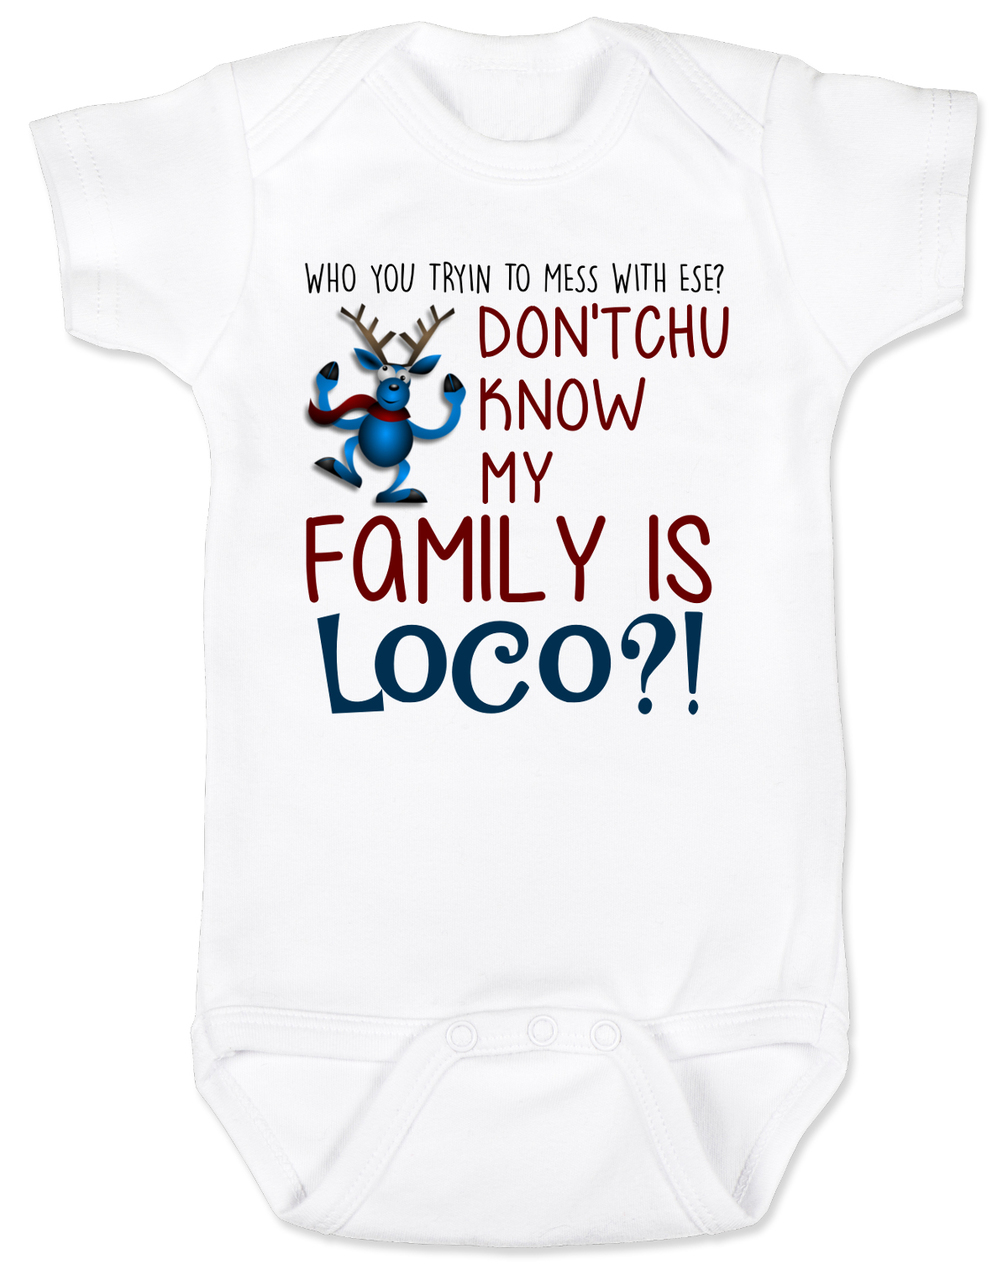 9c88f6876 My family is crazy baby Bodysuit, My family is loco, who you tryin to